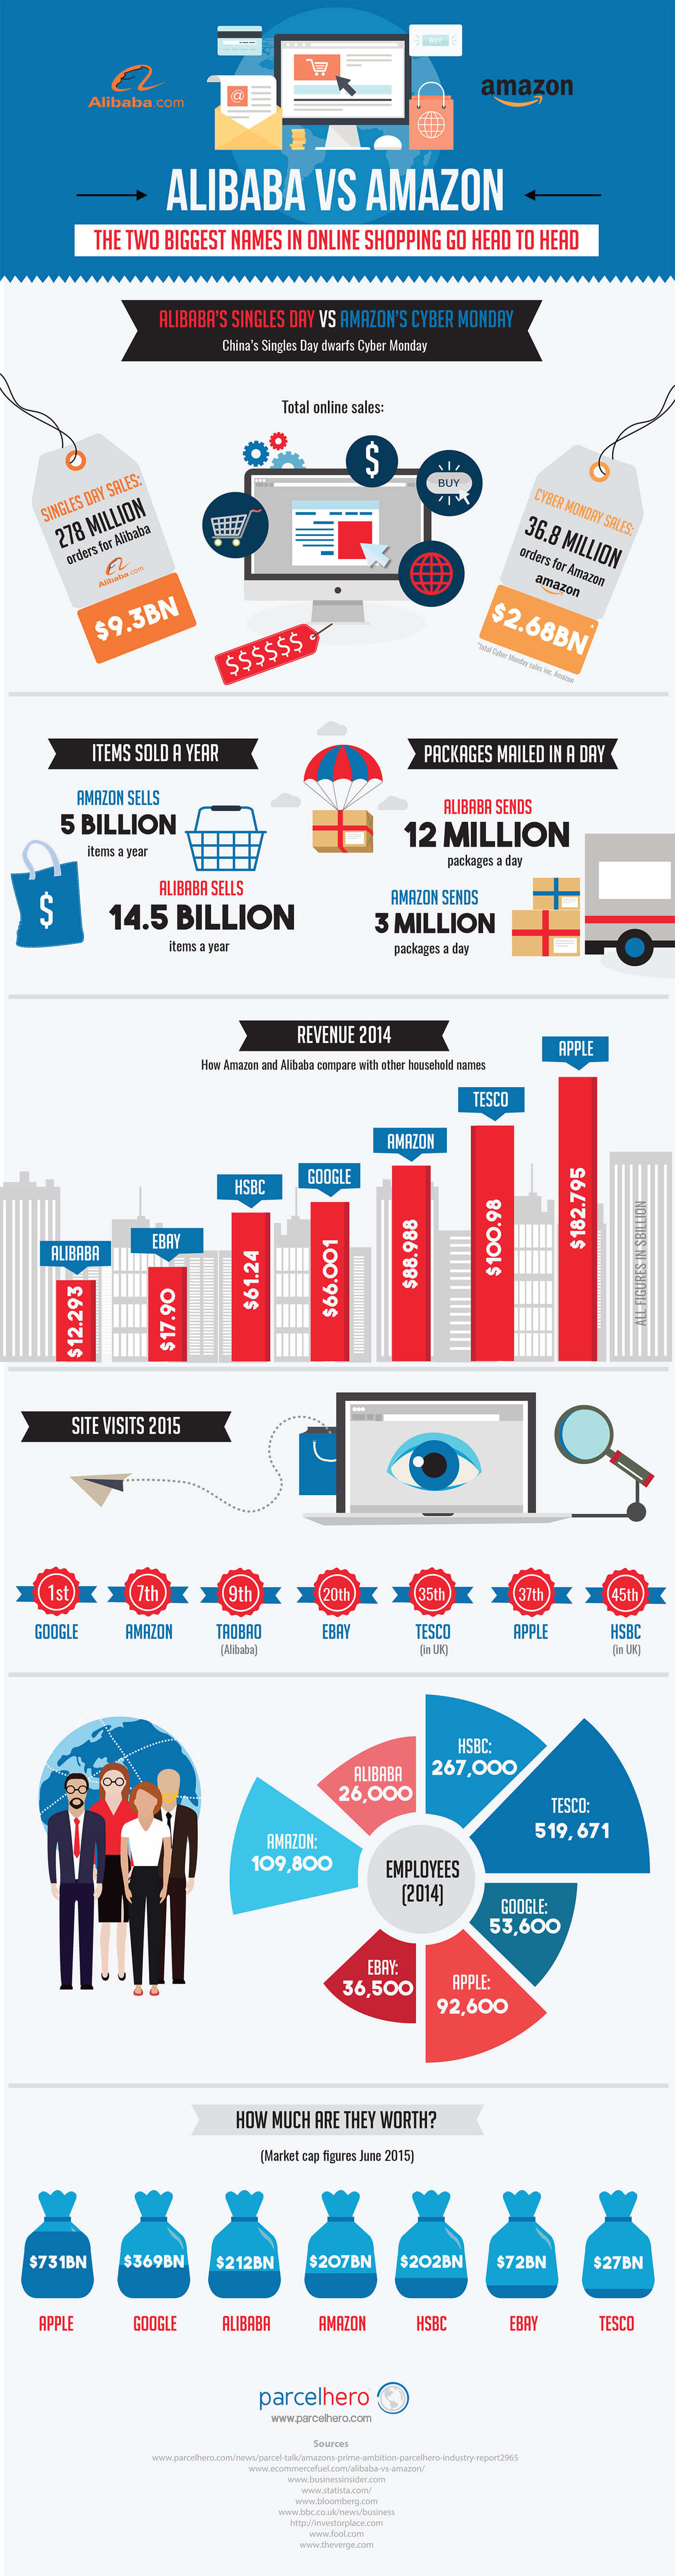 Alibaba-vs-Amazon-infographic